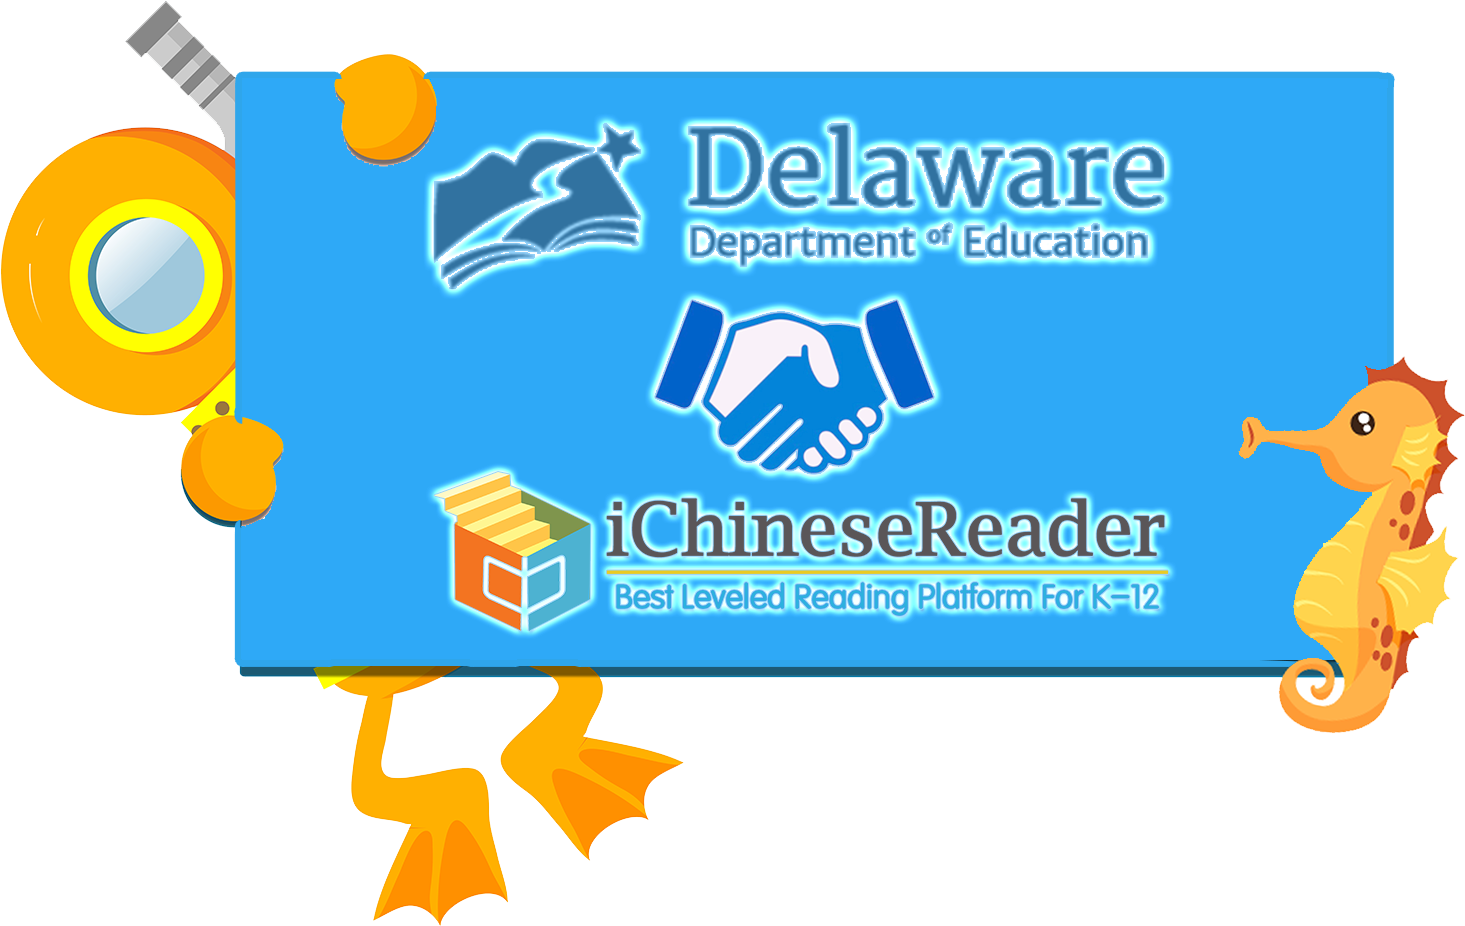 All Immersion Students in Delaware   Can Now Enjoy iChineseReader